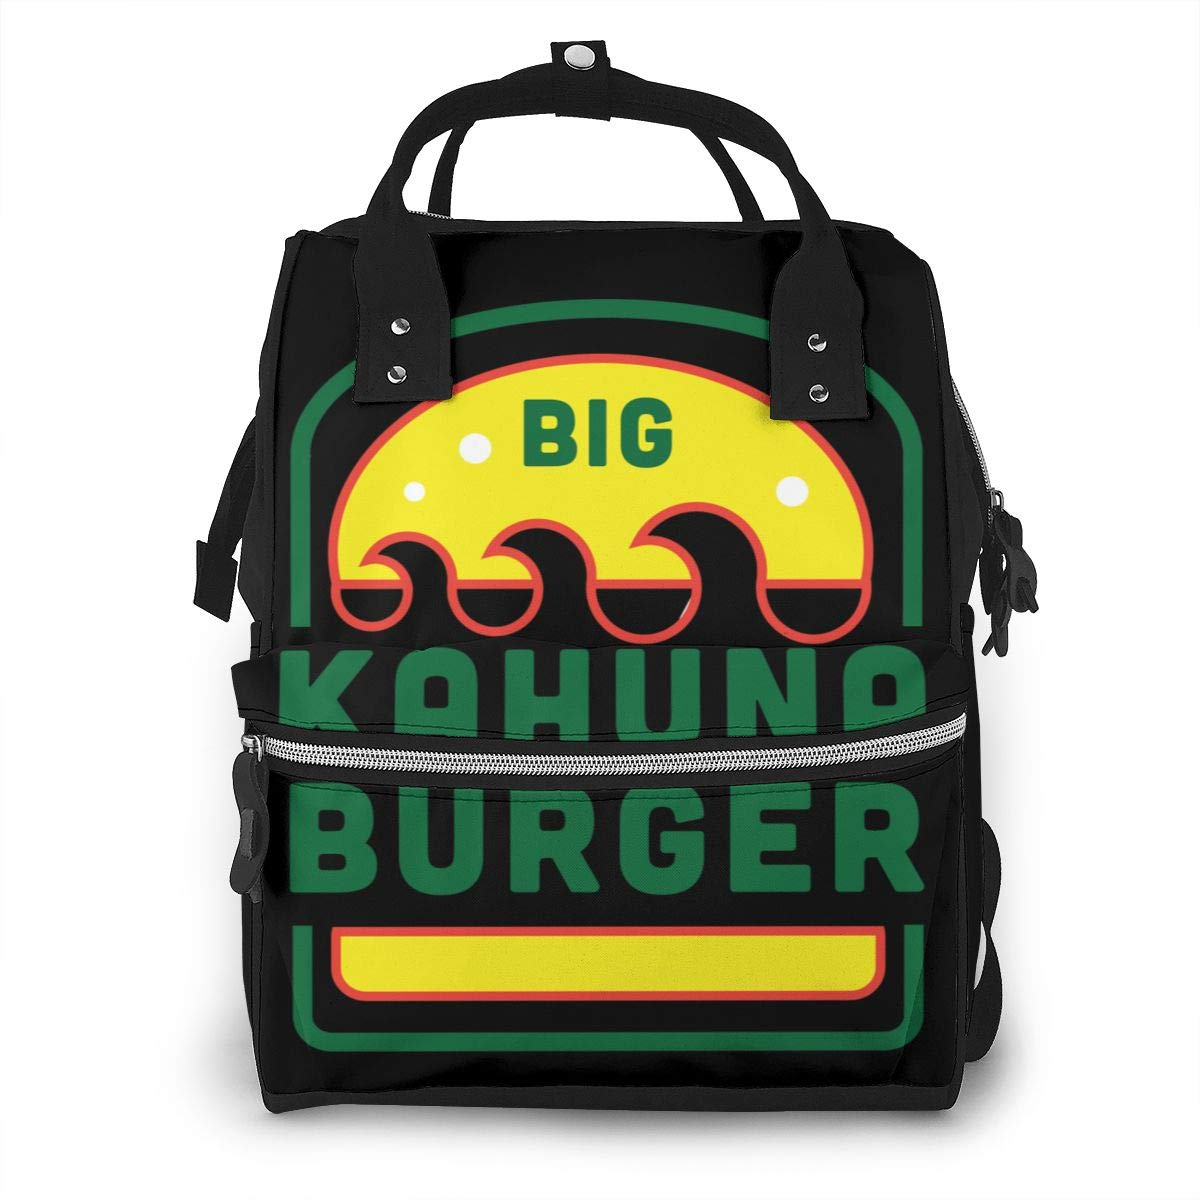 Big Kahuna Burger Diaper Bag Multi-Function Waterproof Travel Backpack Nappy Bags for Baby Care Mummy Backpack